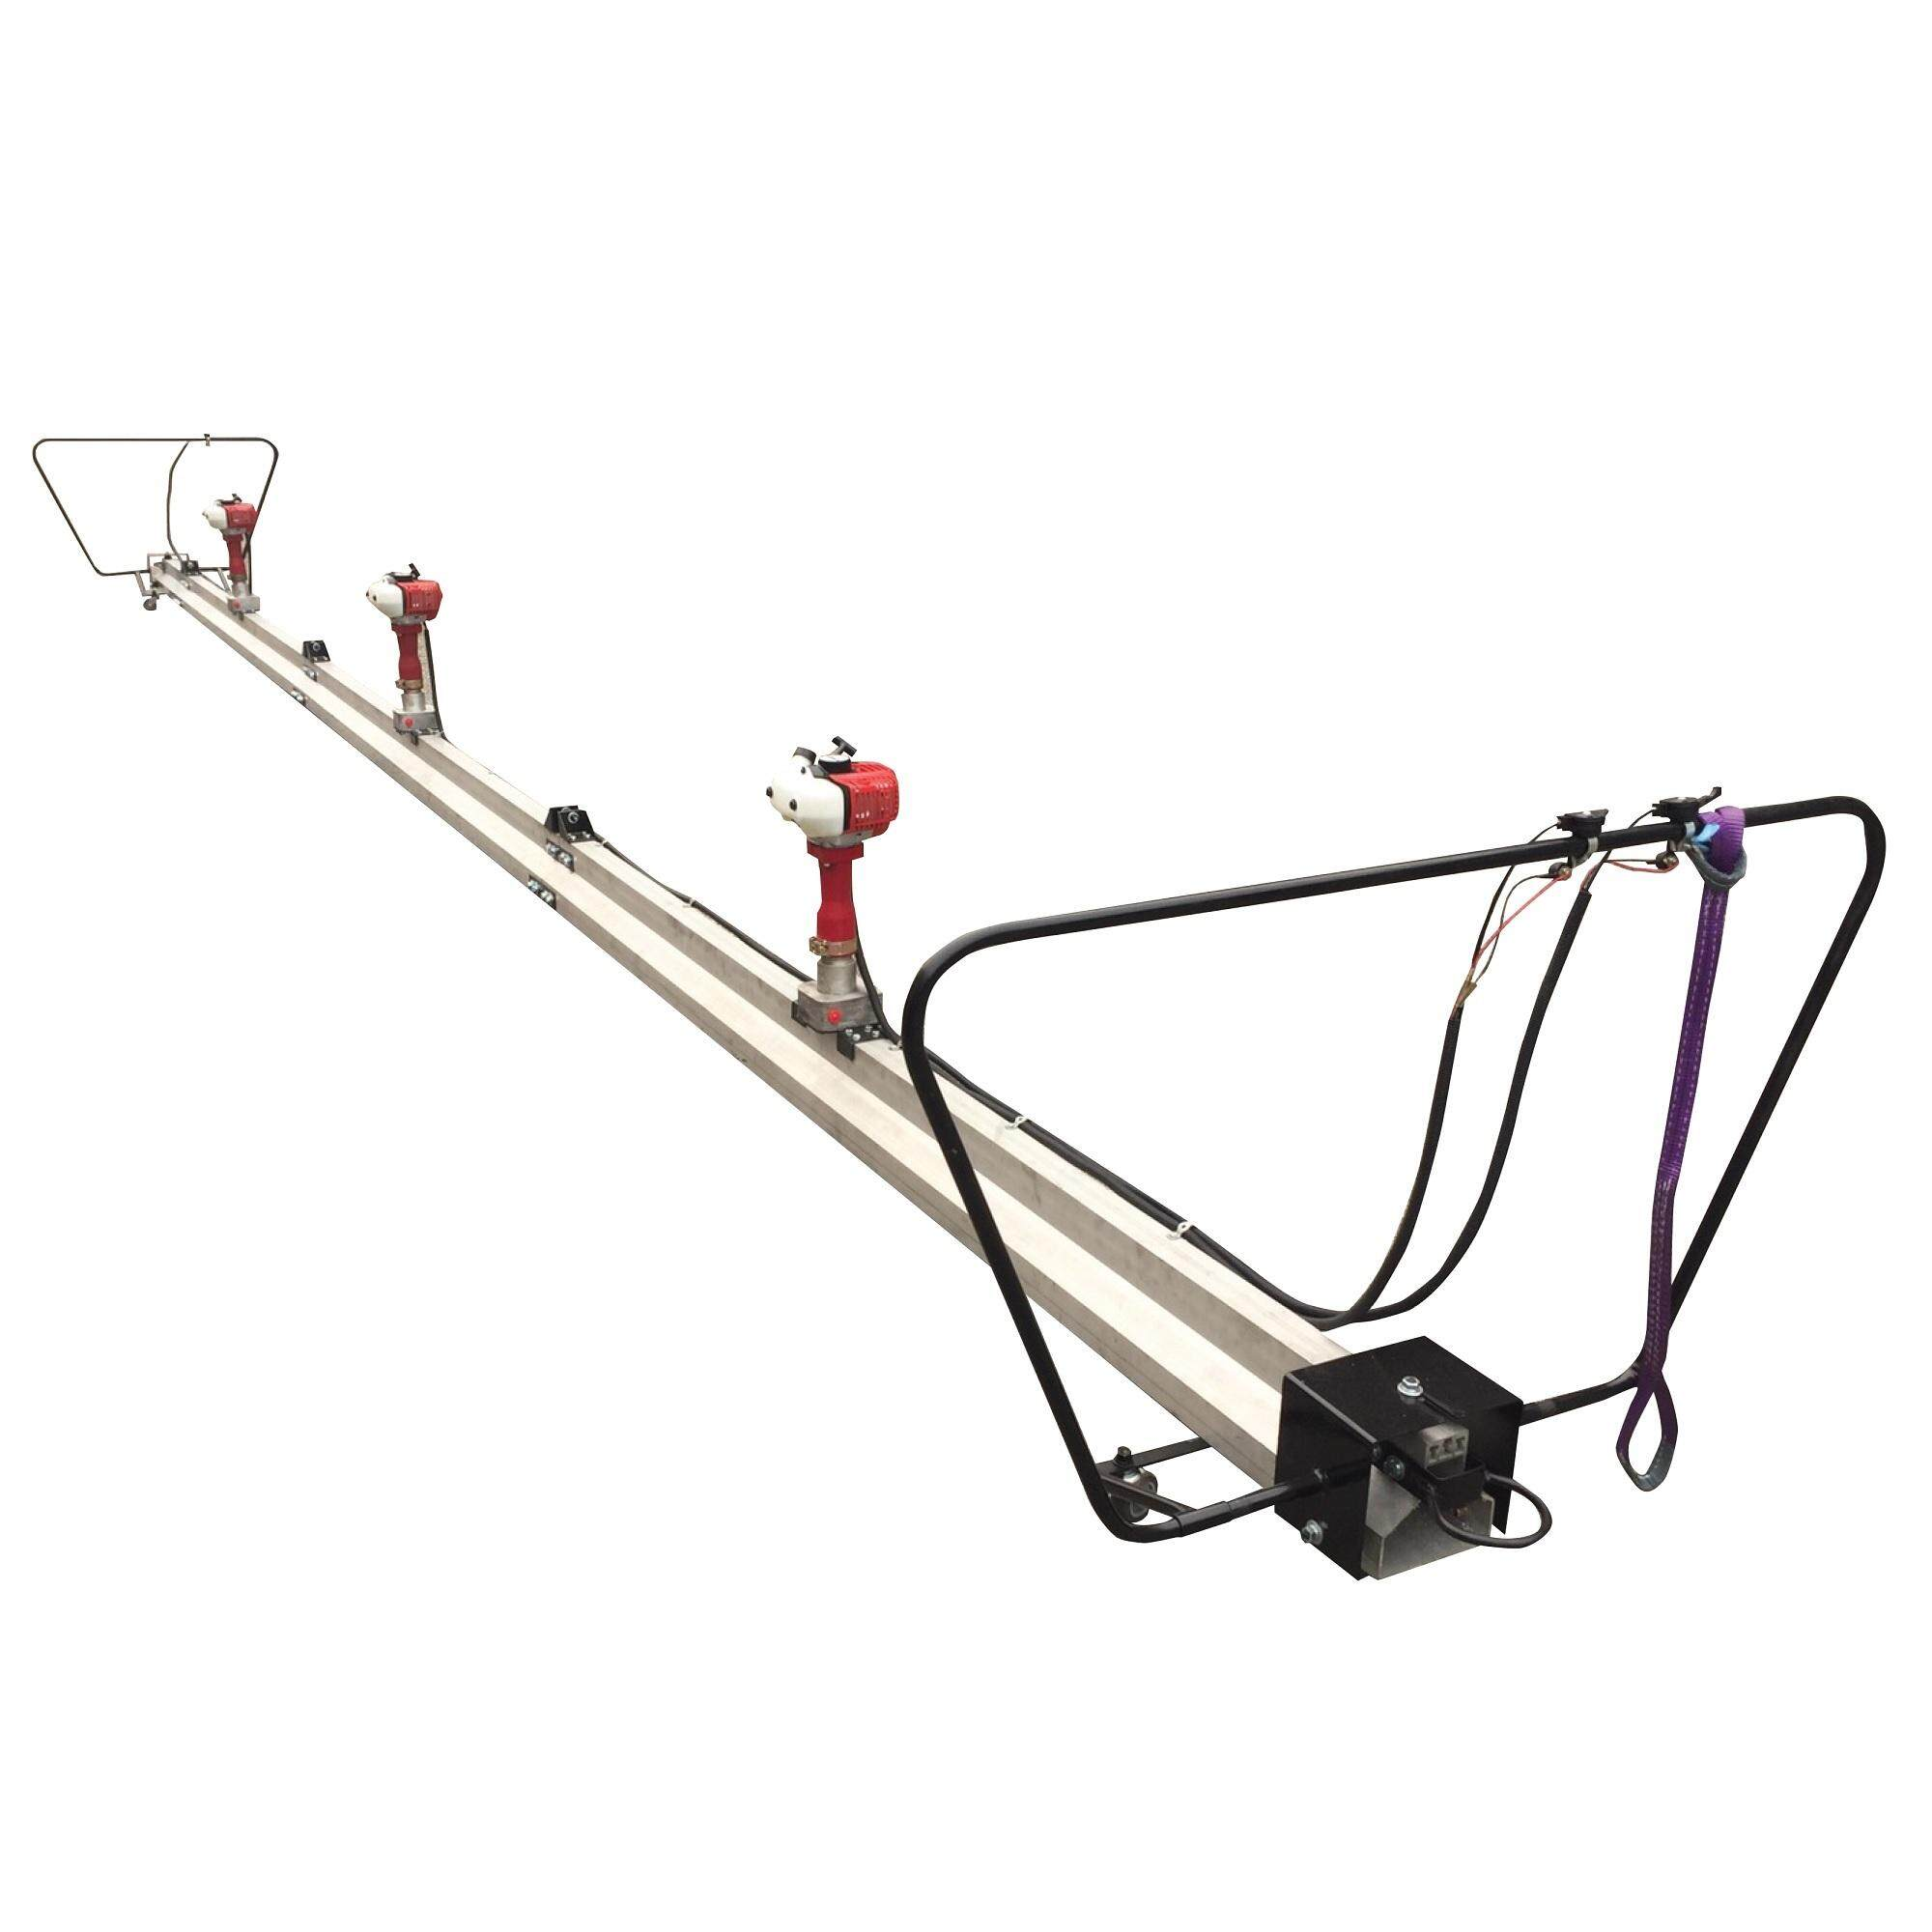 Triple Engine Power Screed Vibrator 30 Feet